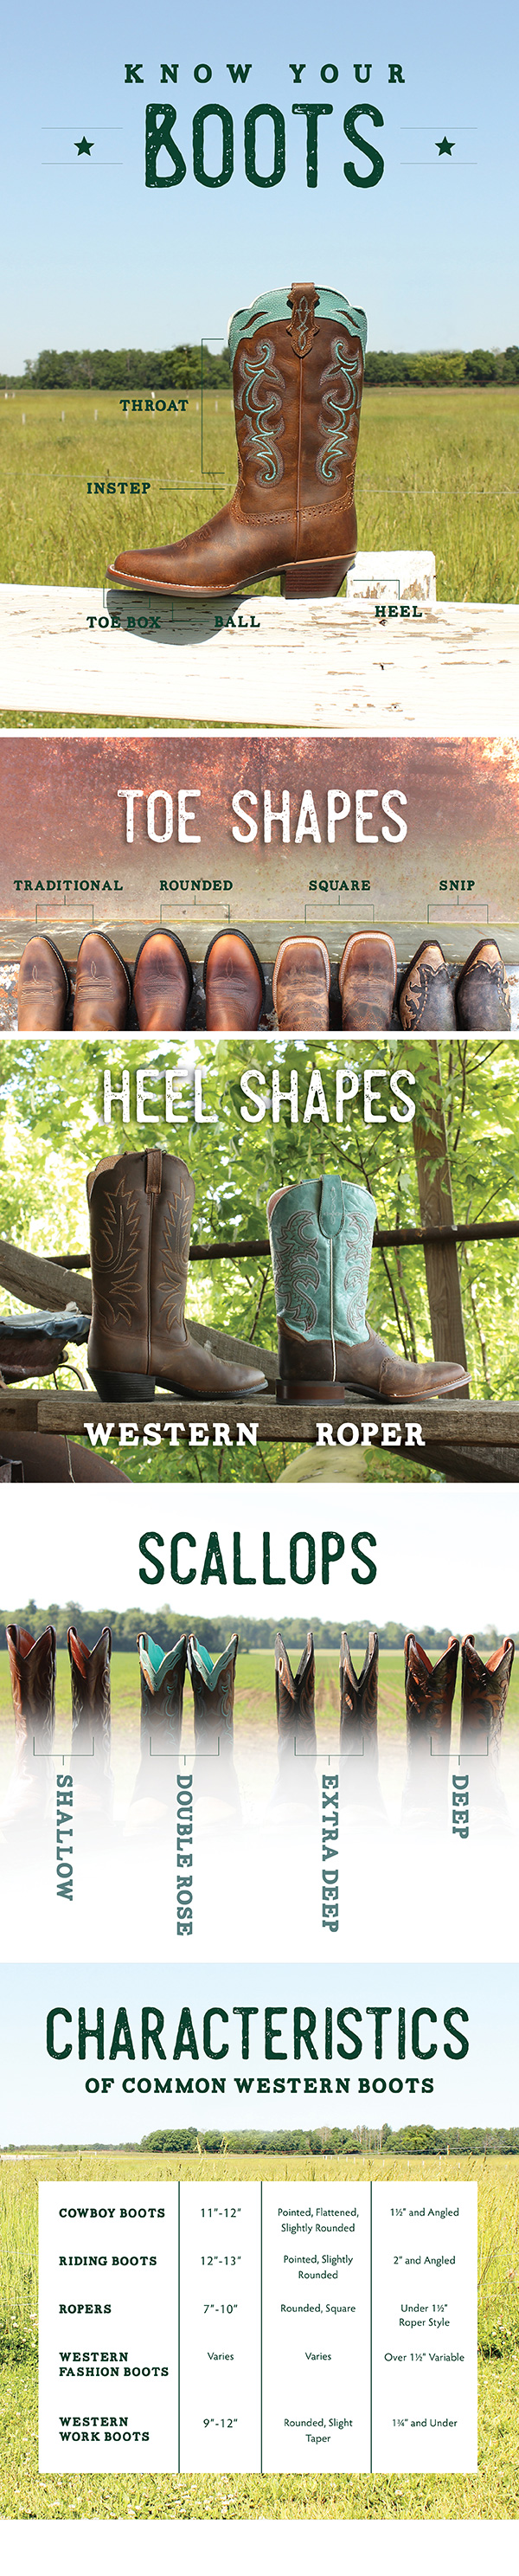 Western boot infographic to help you know the differences